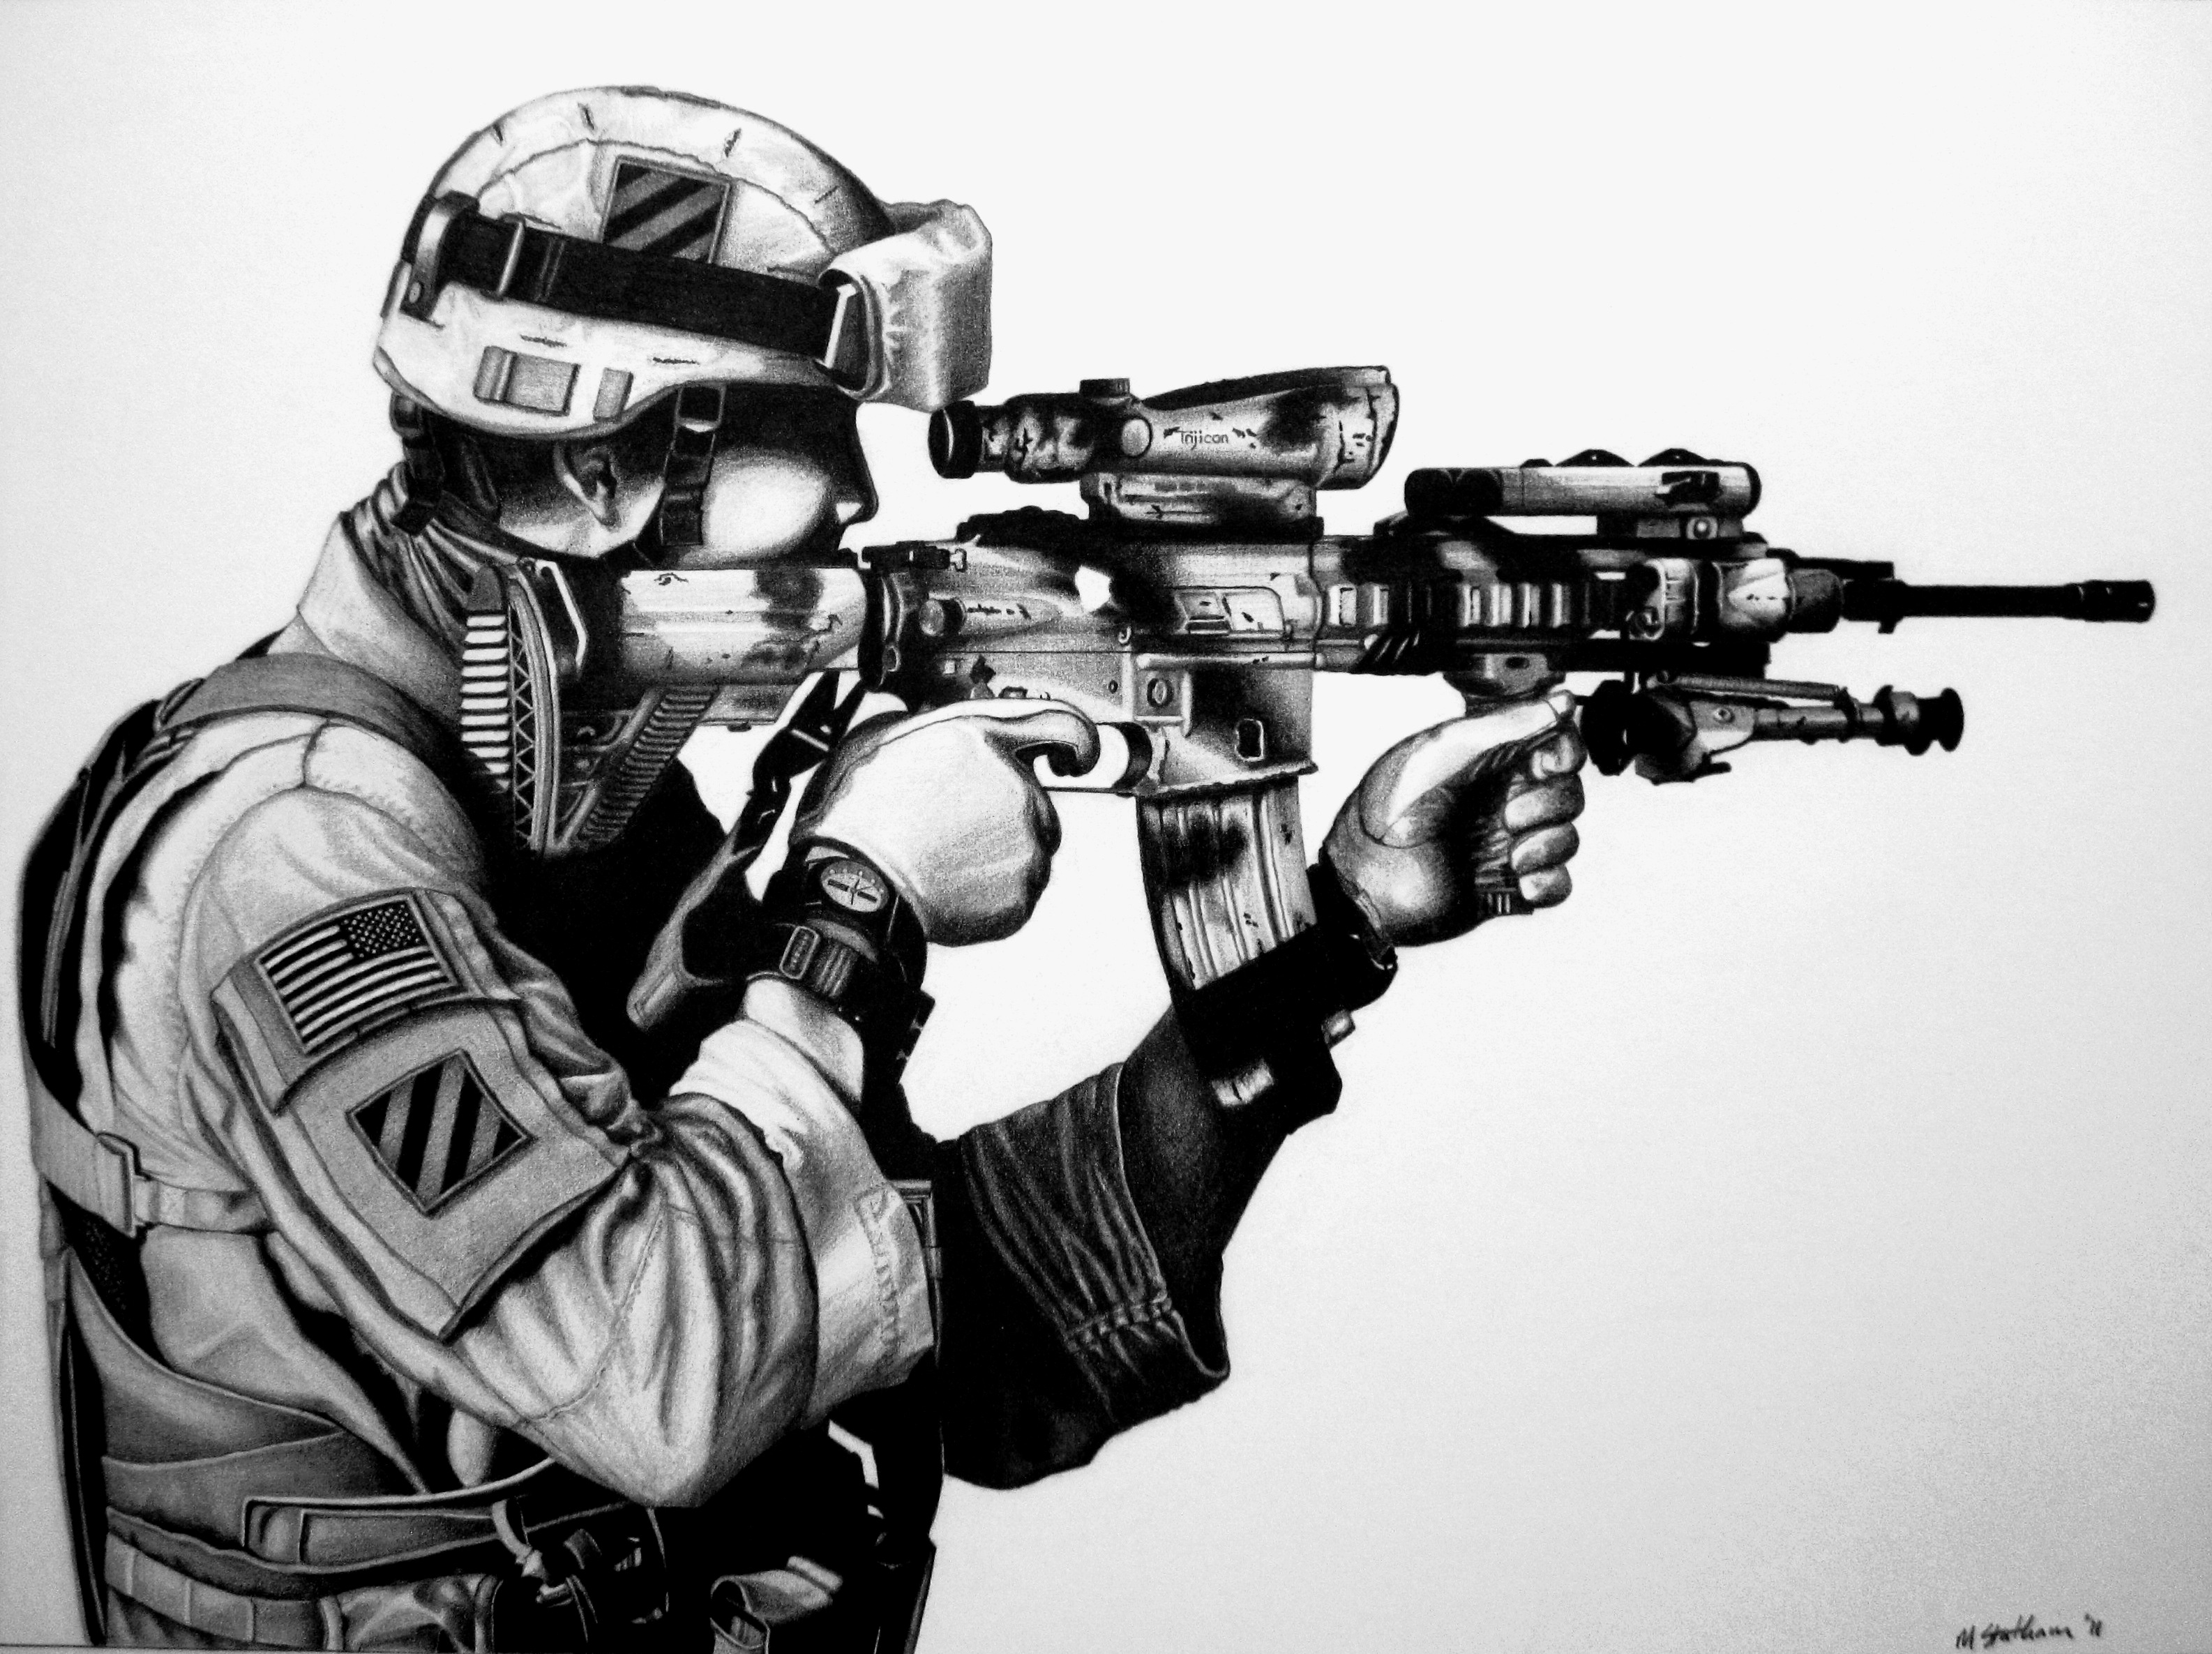 Us Army Soldier By Statham75 On Deviantart